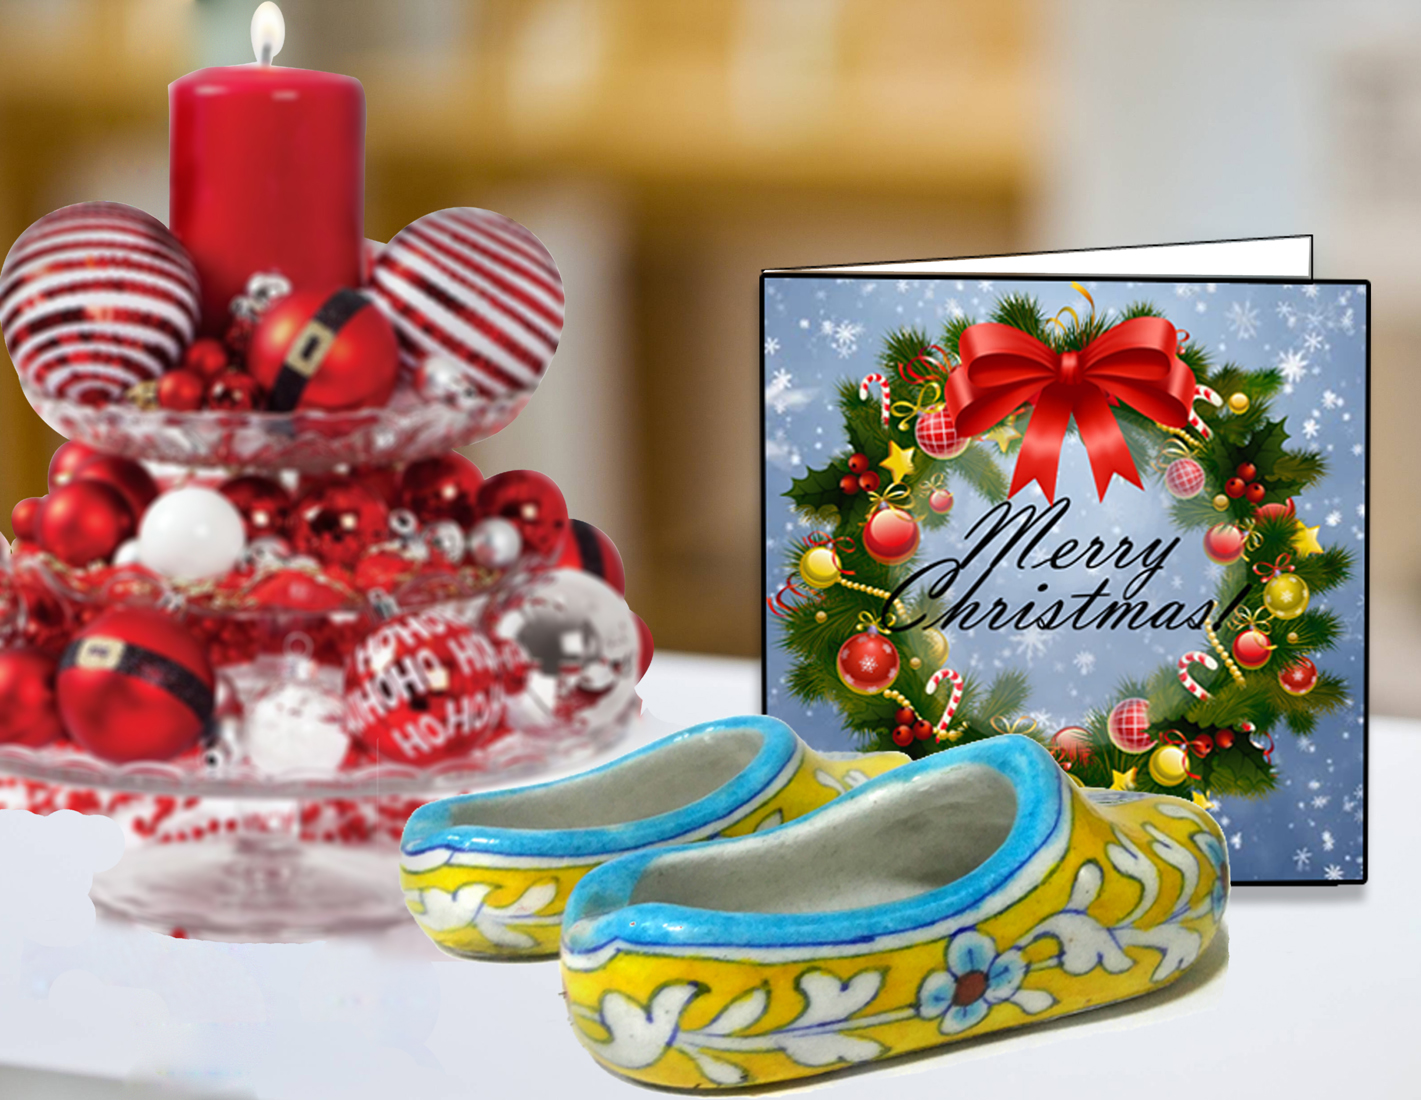 CHRISTMAS COMBO DESK SUPPLIES HOLDERS AND GREETING CARD